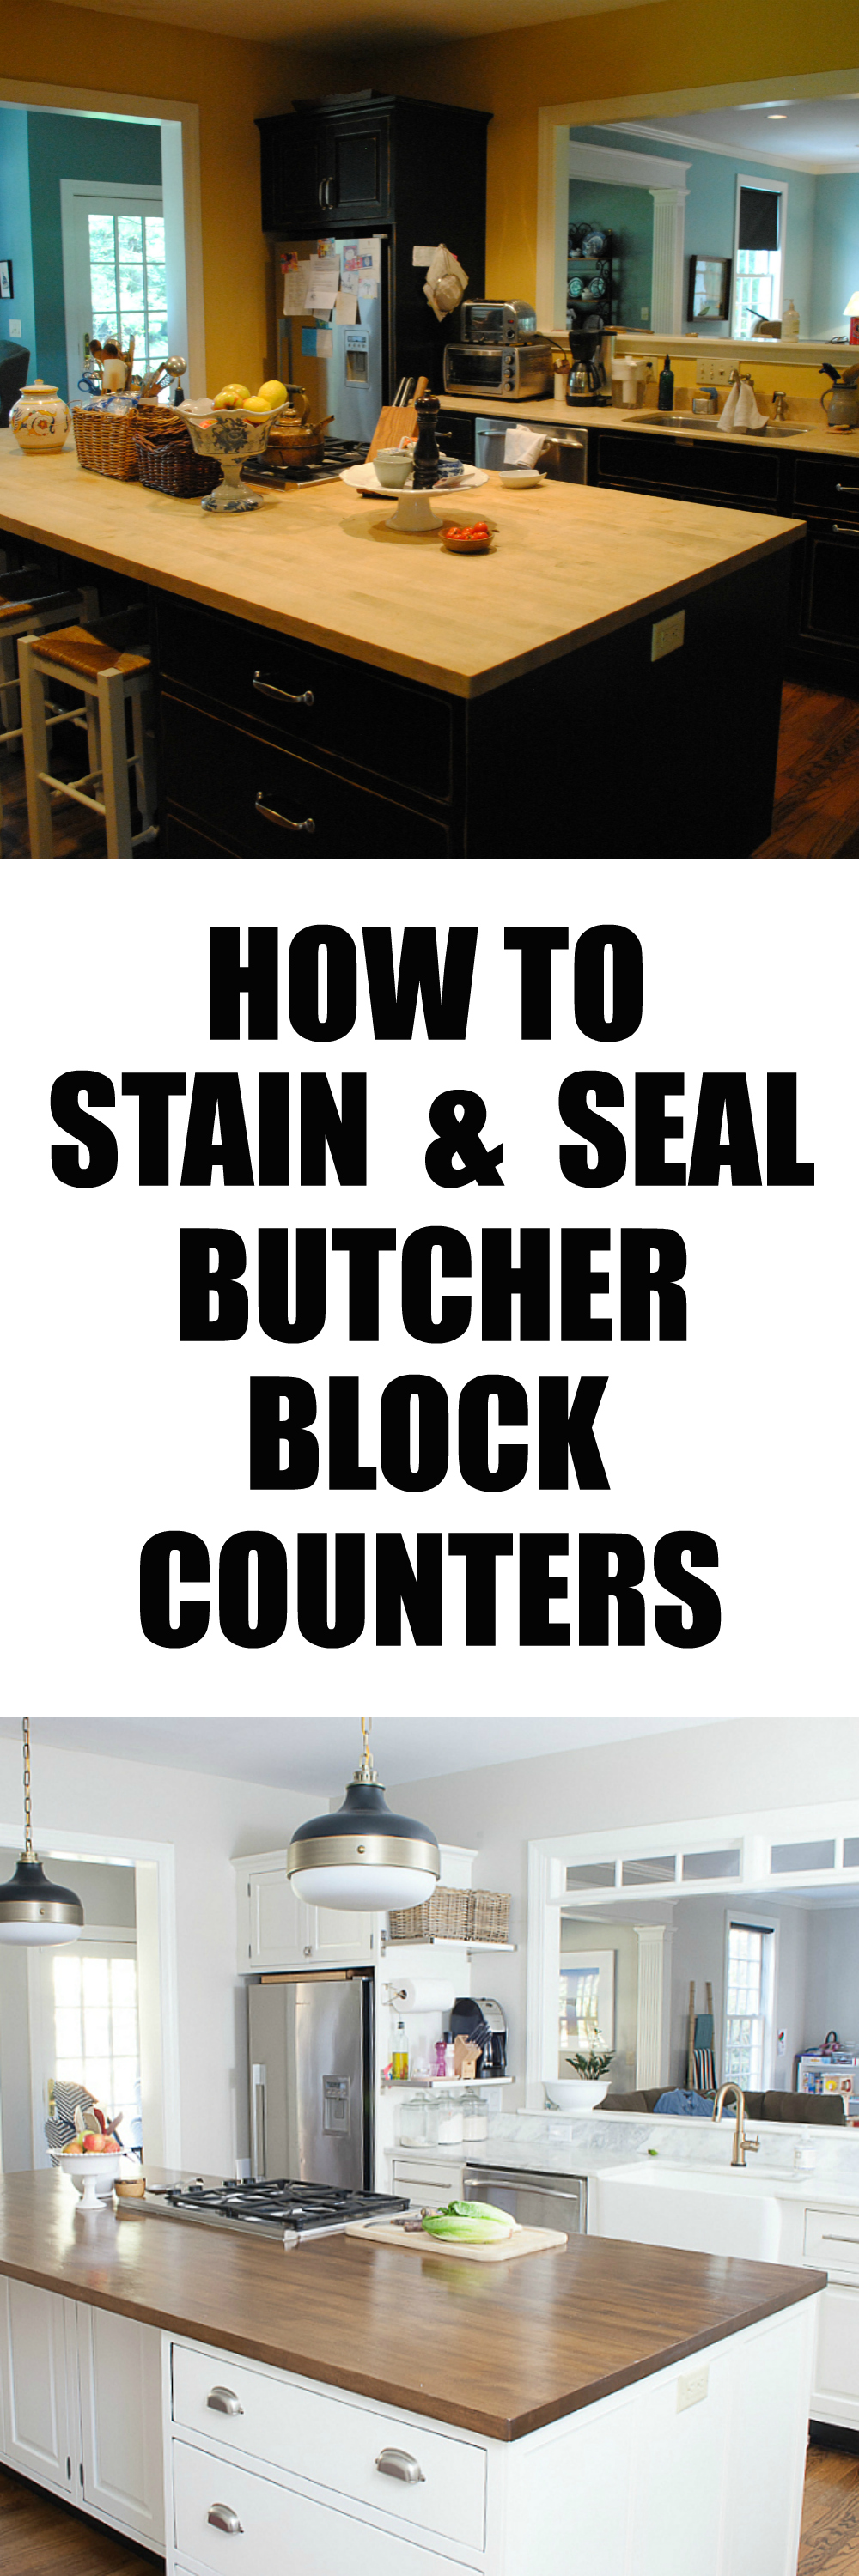 Care Of Butcher Block Part - 46: How To Stain And Seal Butcher Block Counters